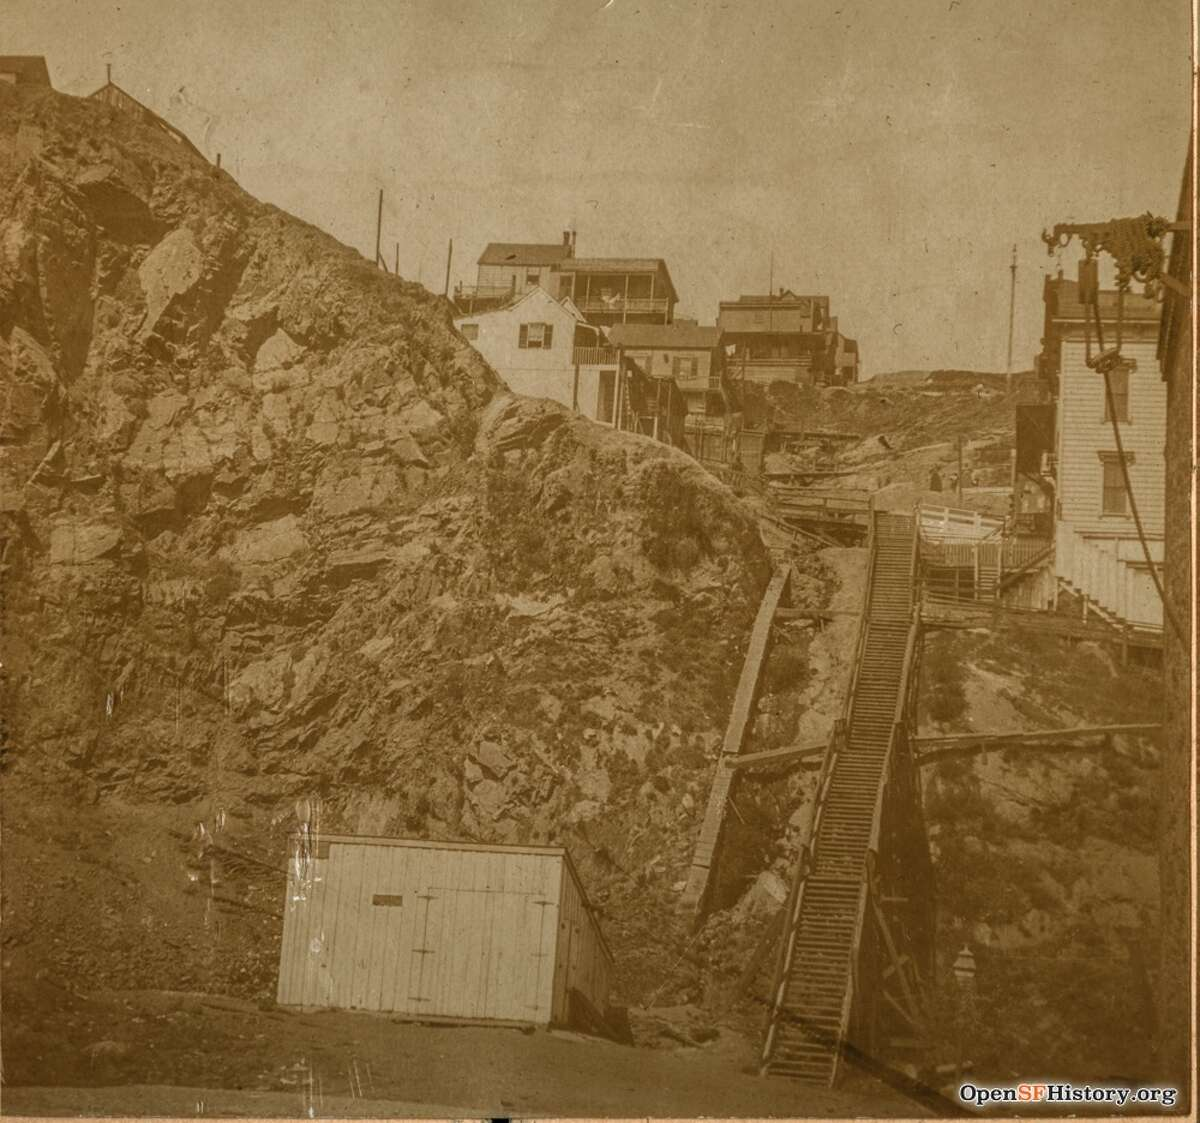 Undated photo of Filbert steps at the base of Telegraph Hill. Wooden stairs, houses, shack. Courtesy of OpenSFHistory.org.